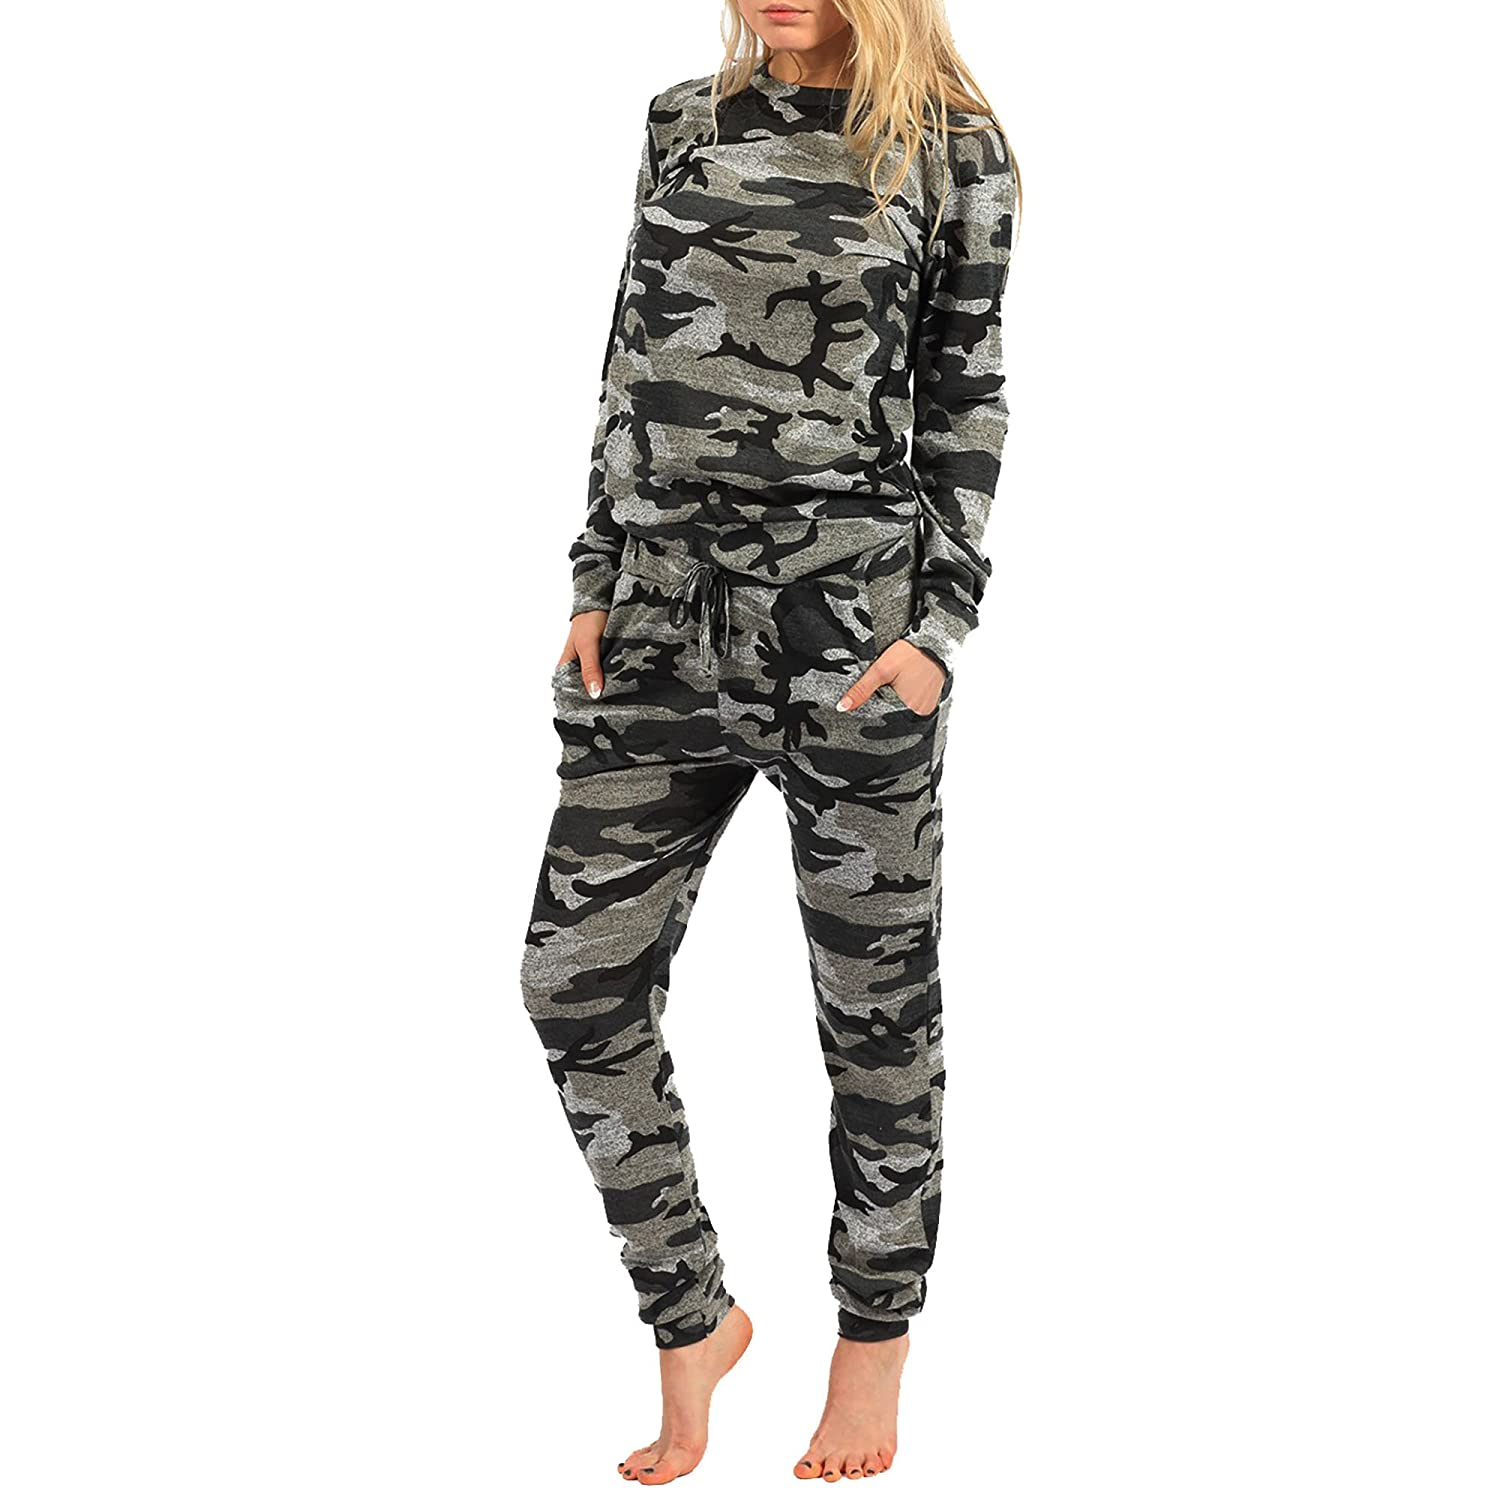 New Womens Girls Camouflage Jogging Suit Set Camo Soft Knitted Full Tracksuit